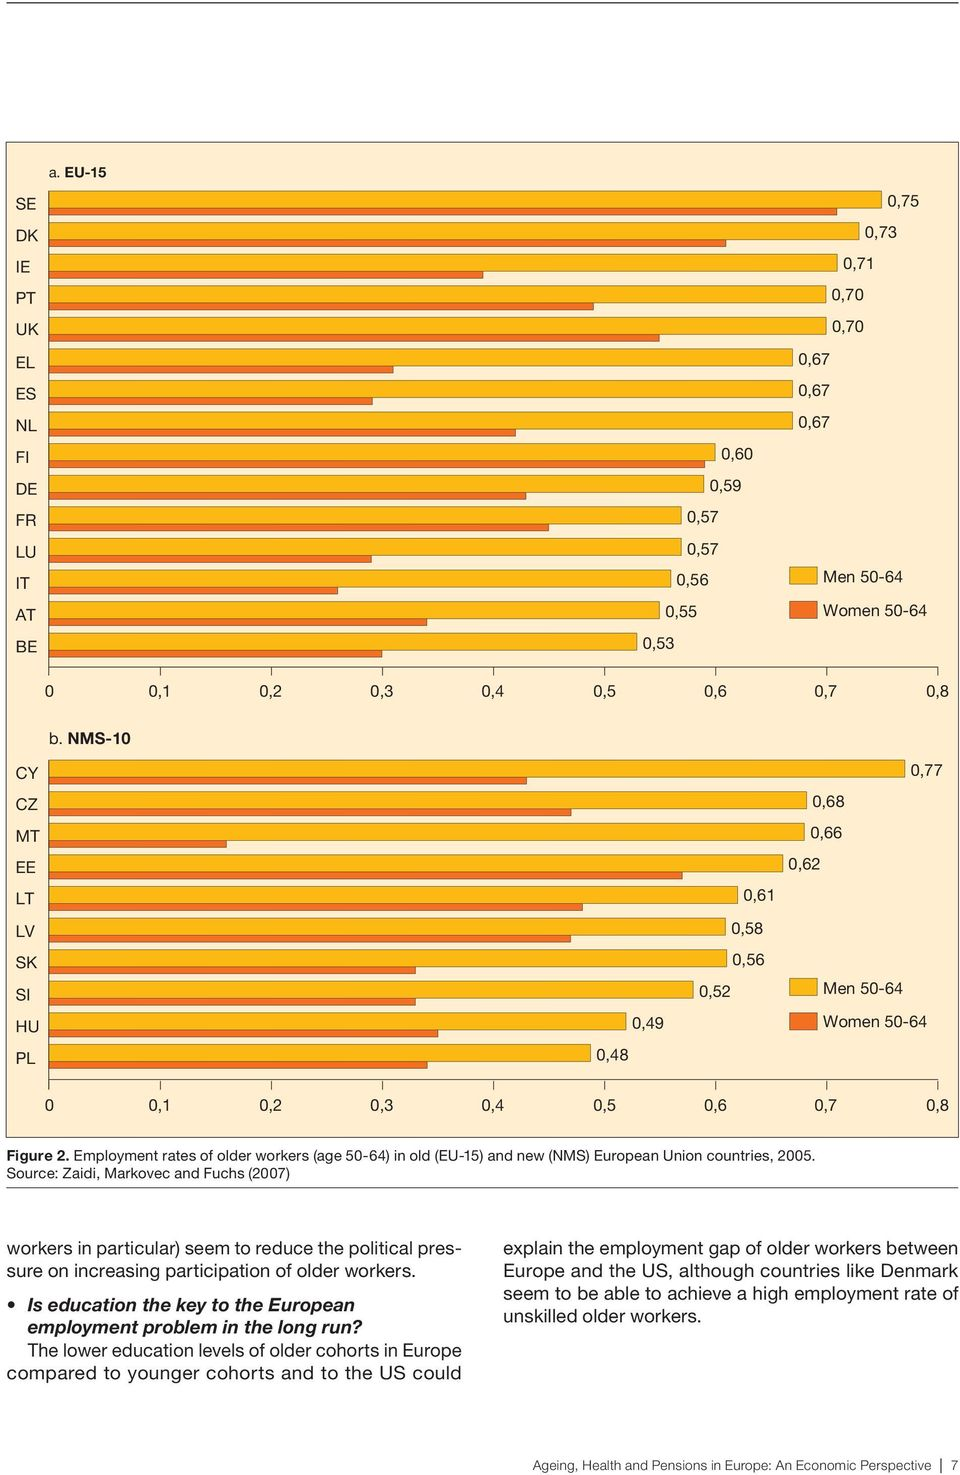 Employment rates of older workers (age 50-64) in old (EU-15) and new (NMS) European Union countries, 2005.